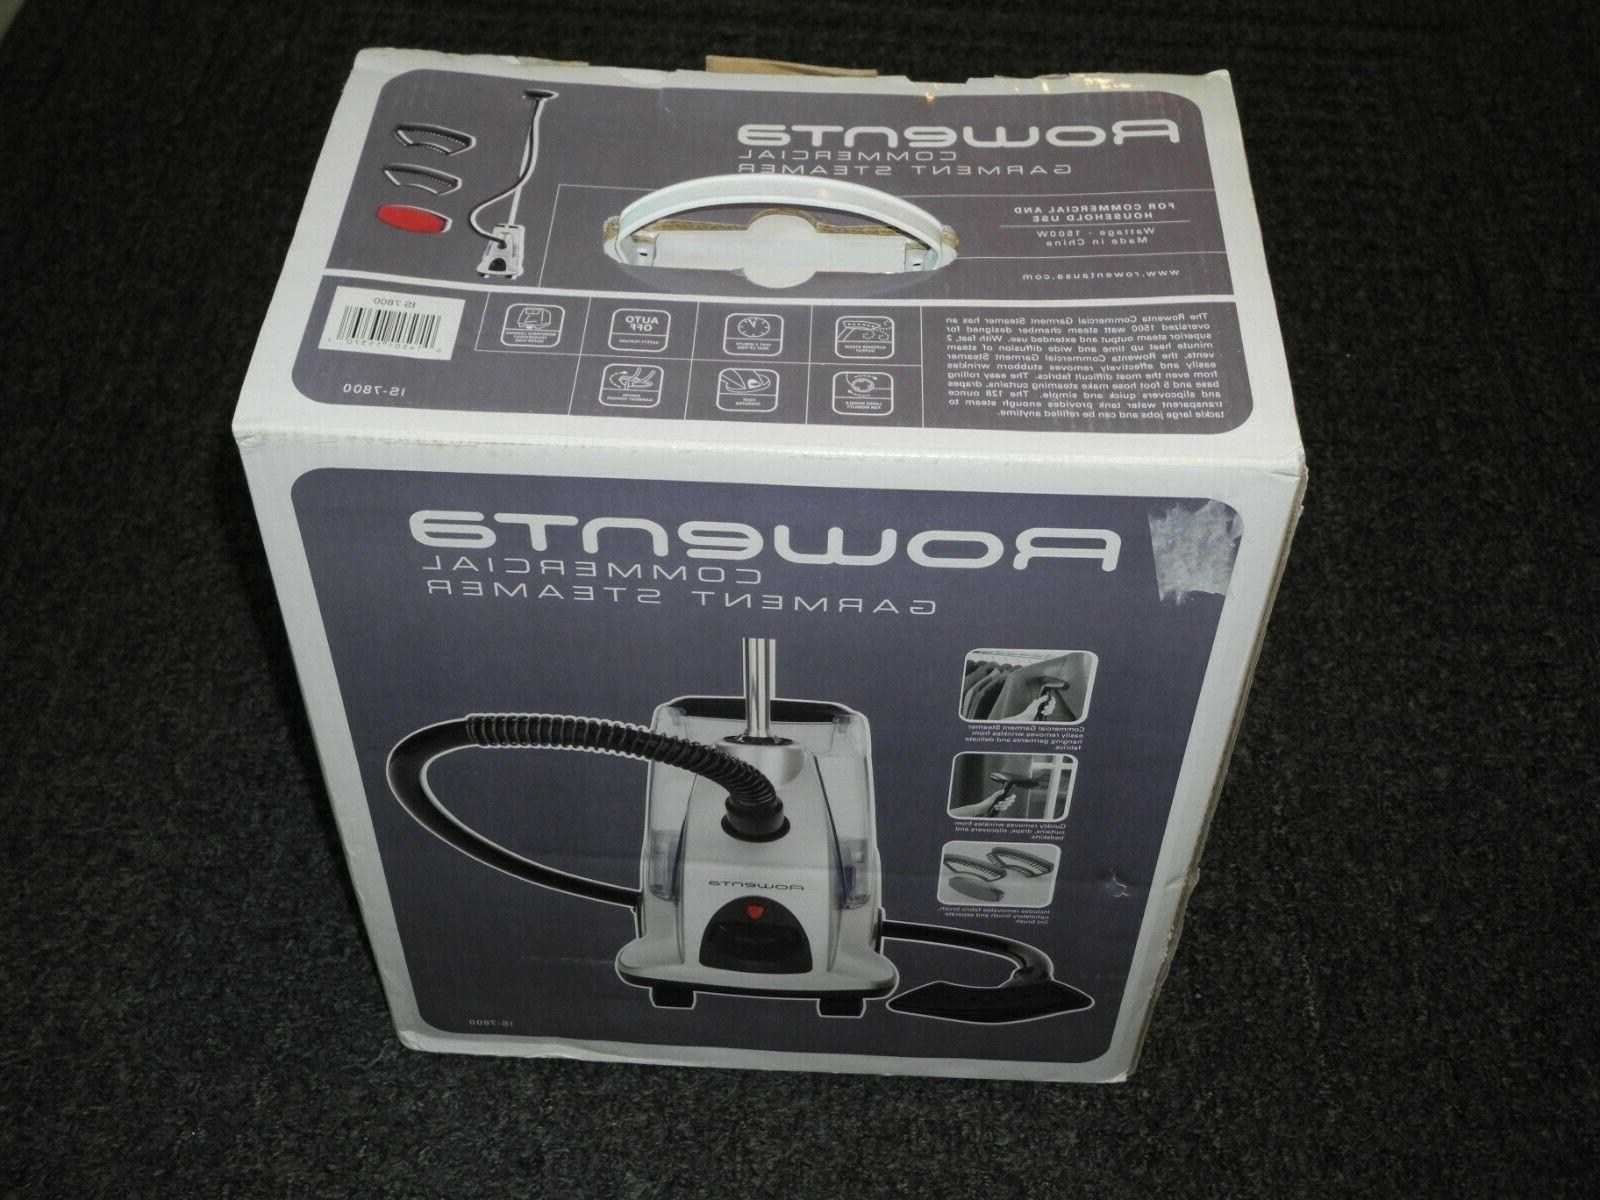 new in box is 7800 commercial garment